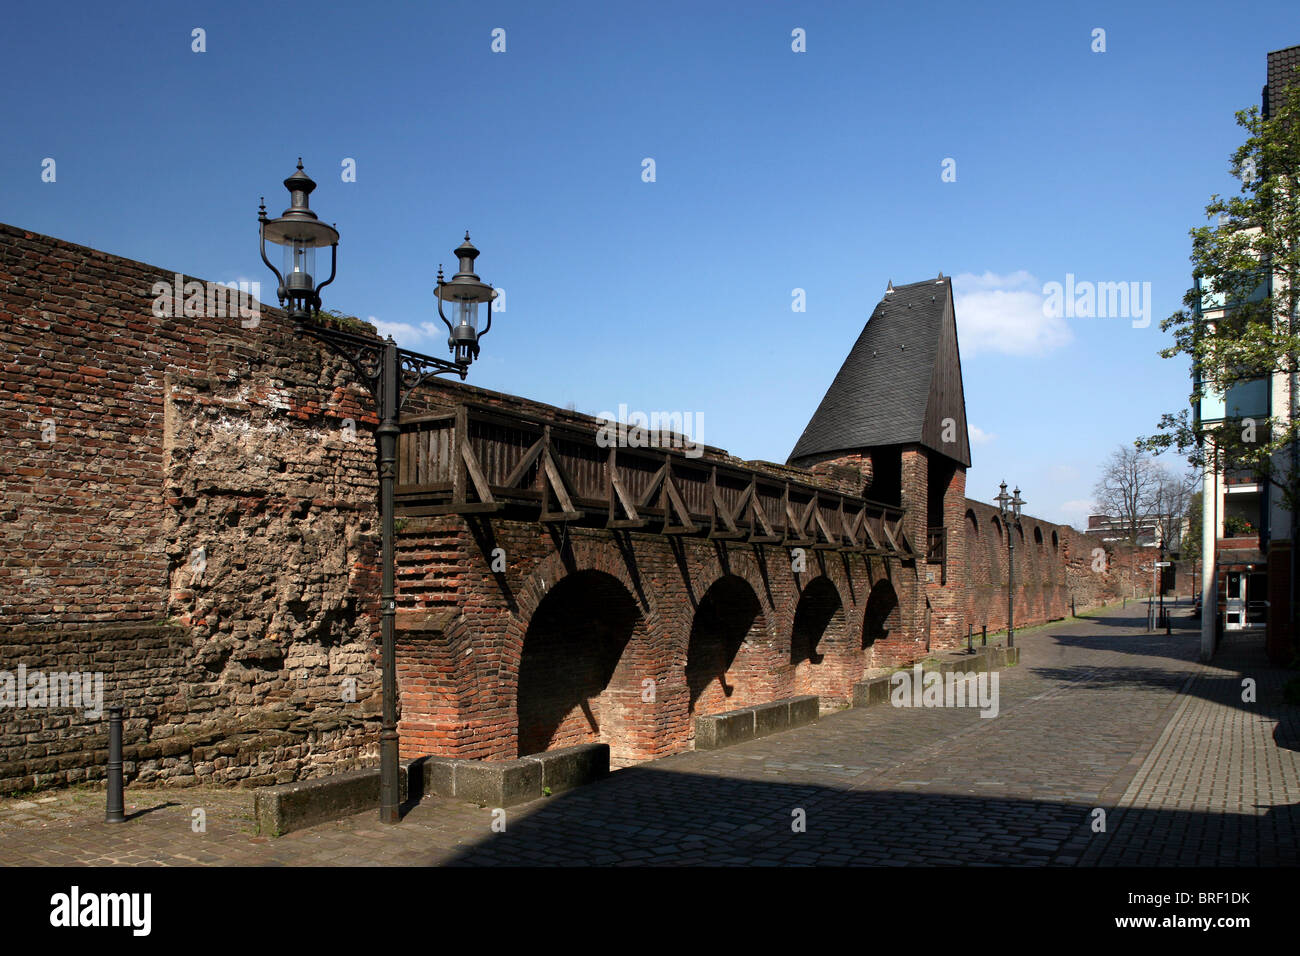 City wall, Duisburg, Ruhr Area, North Rhine-Westphalia, Germany, Europe - Stock Image